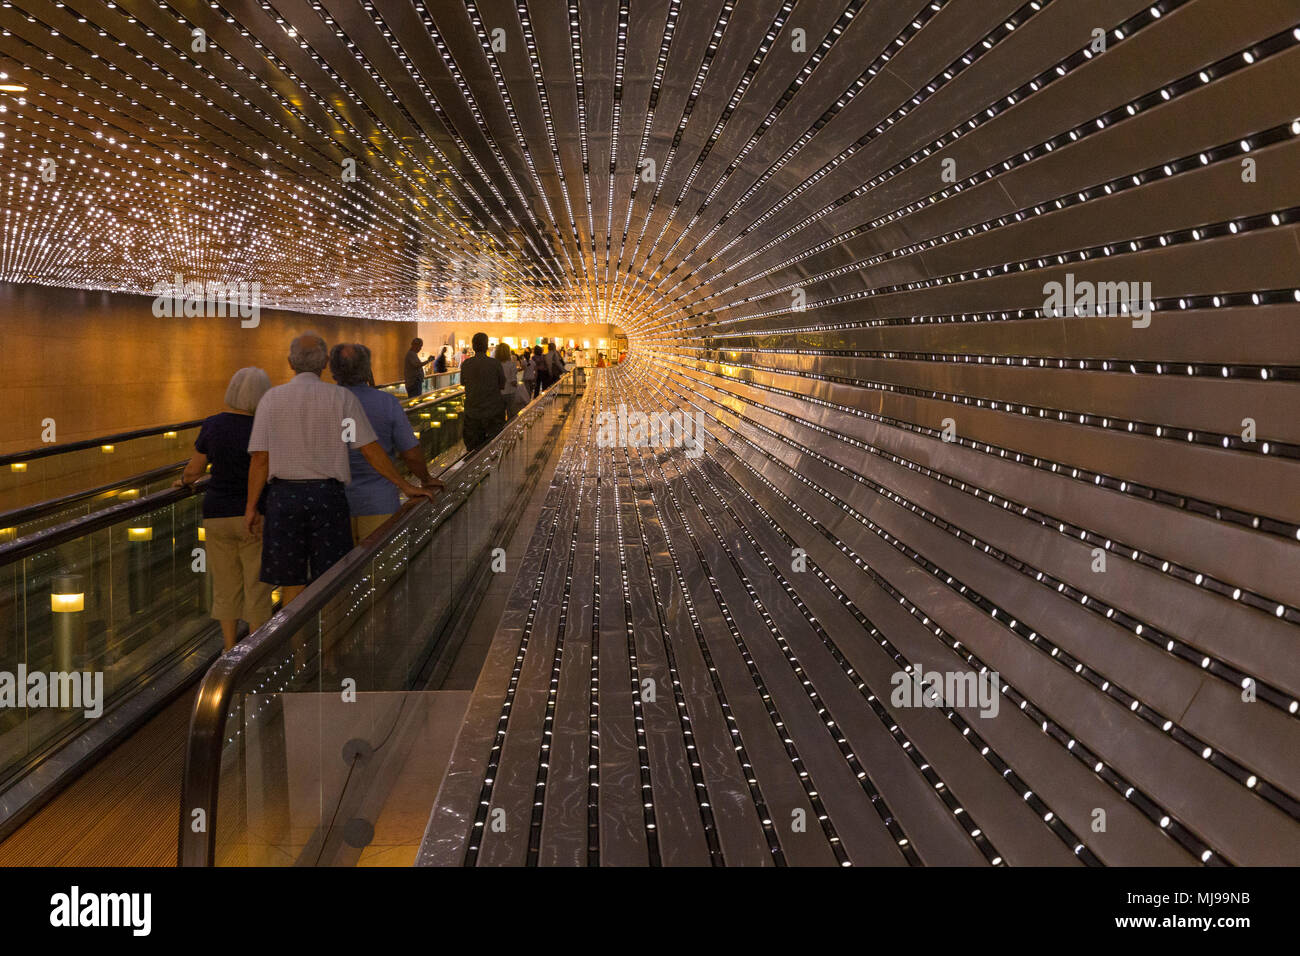 Multiverse, LED light installation, Leo Villareal, 2008, connecting East and West Builldings, National Gallery of Art, Washington DC, USA, North Ameri - Stock Image